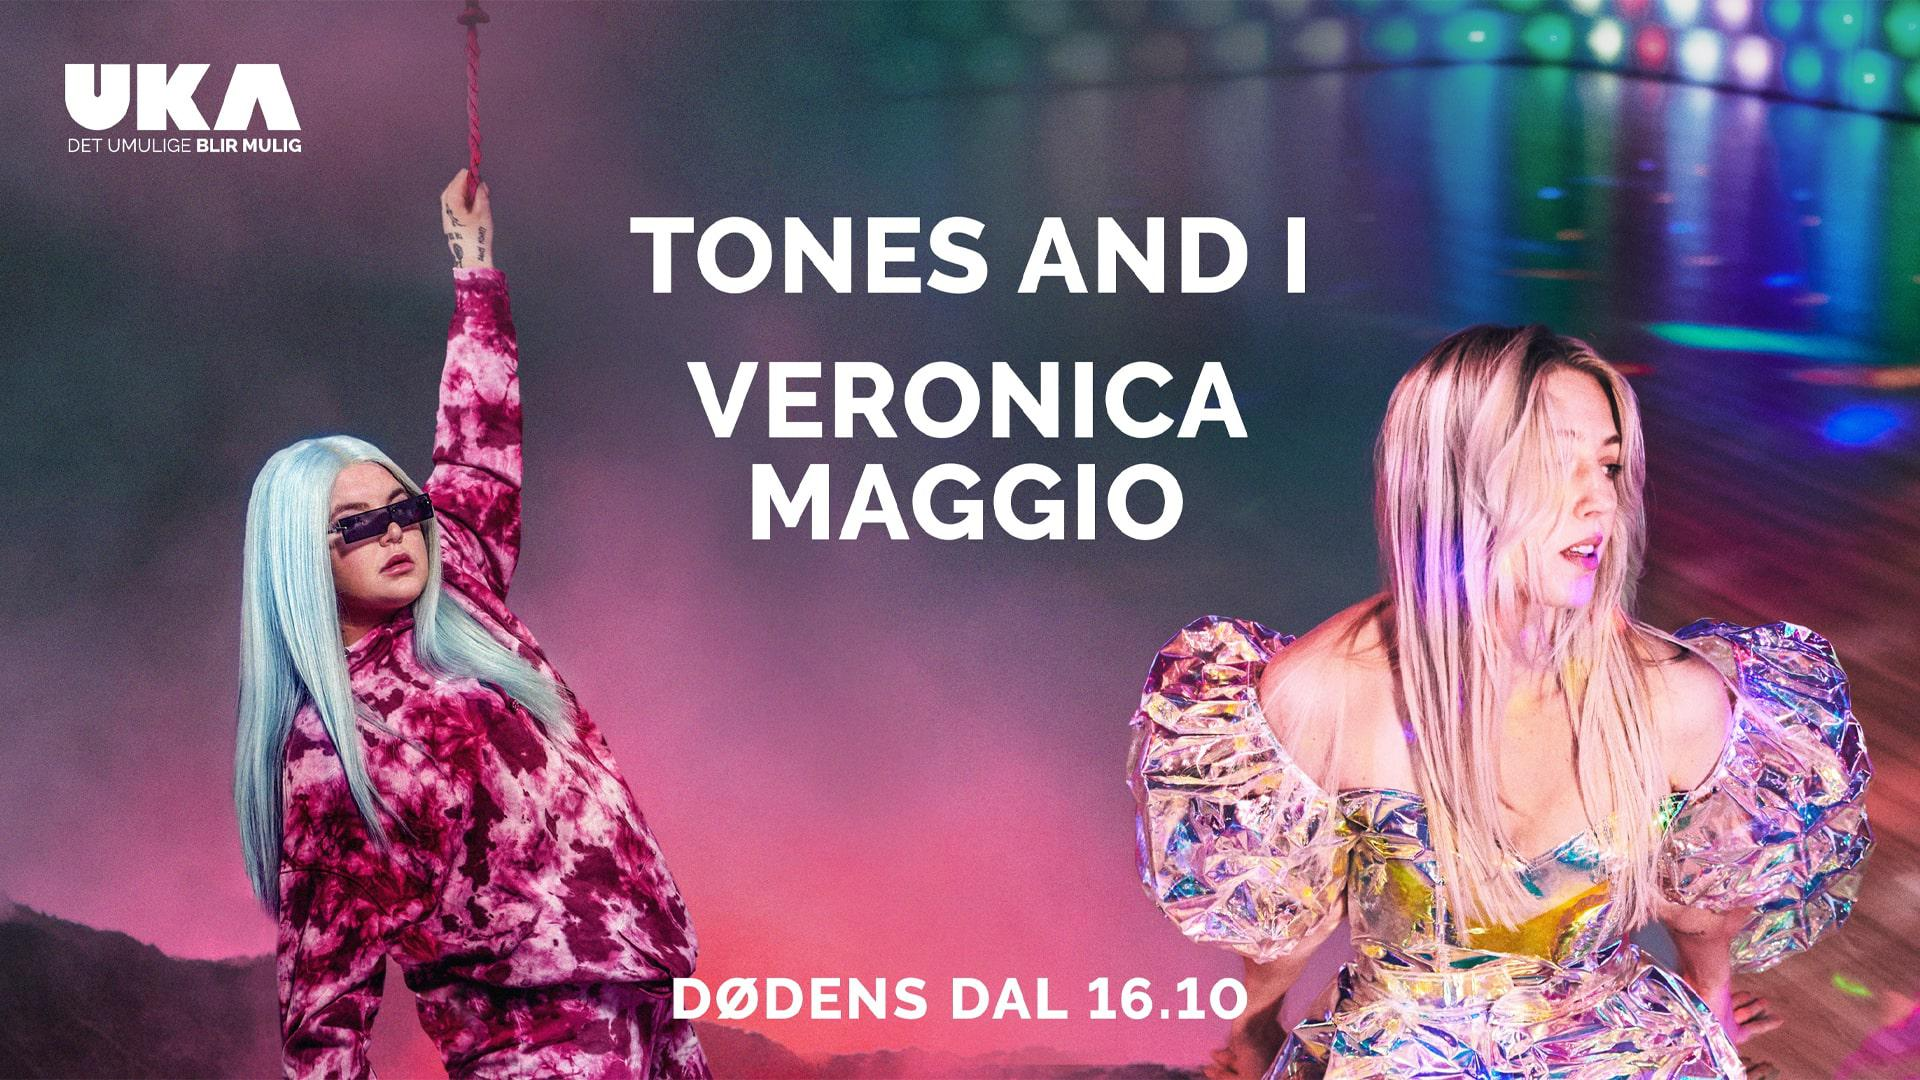 tones and i + veronica maggio